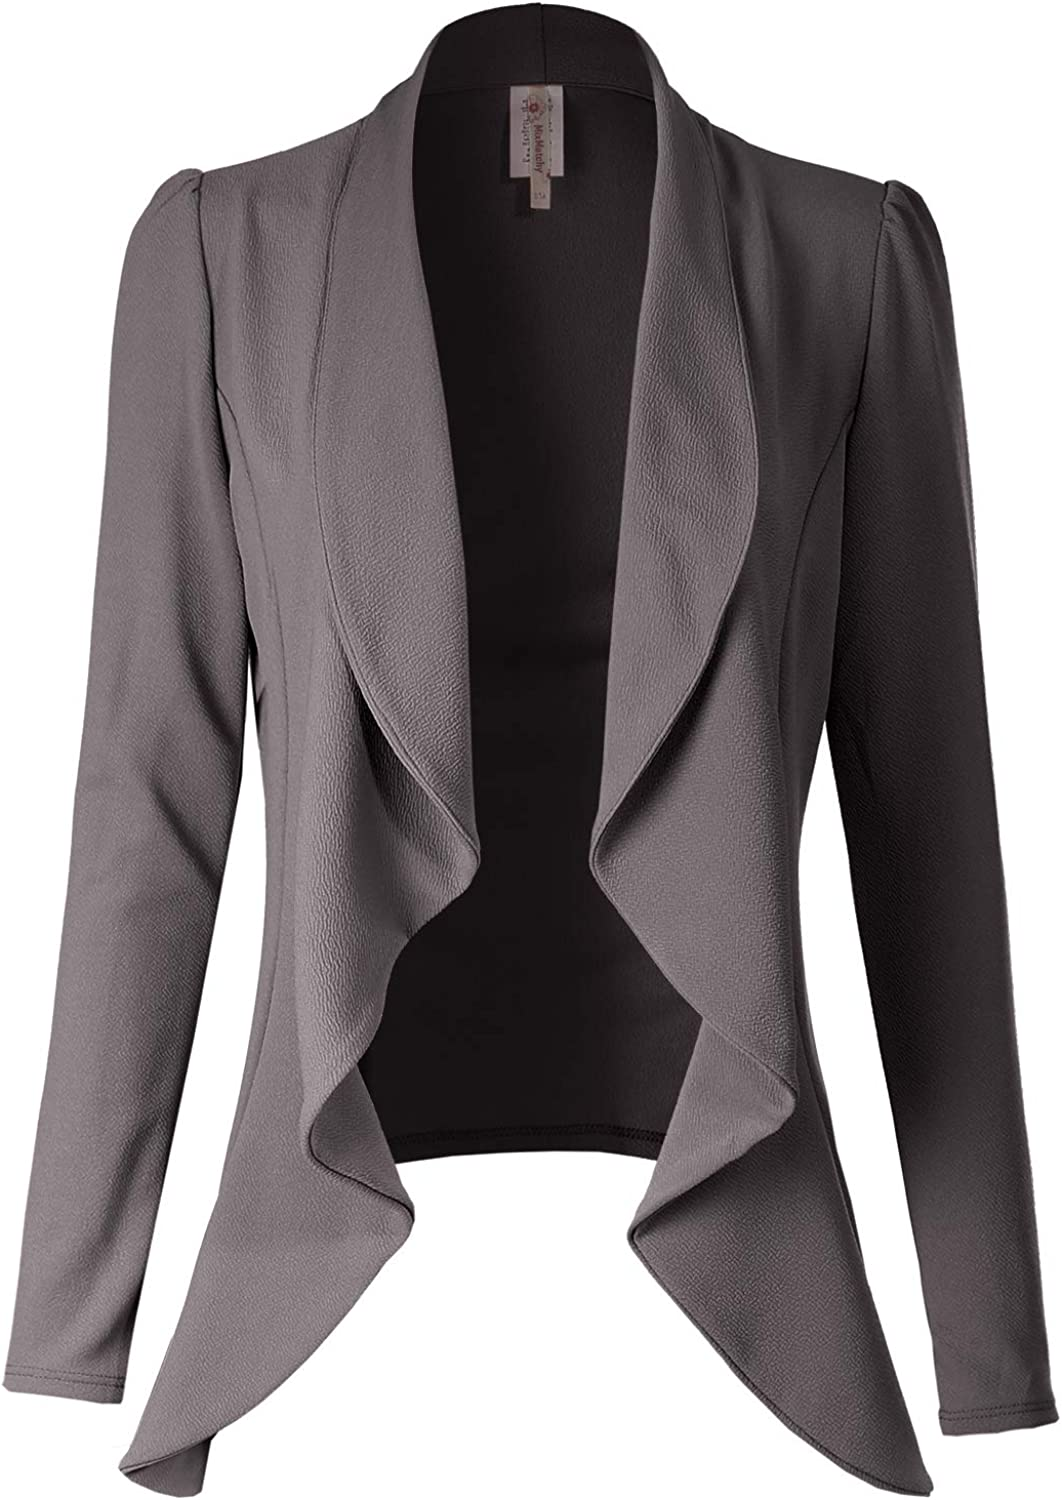 S-3X Made in USA Solid Formal Style Open Front Long Sleeves Blazer MixMatchy Womens